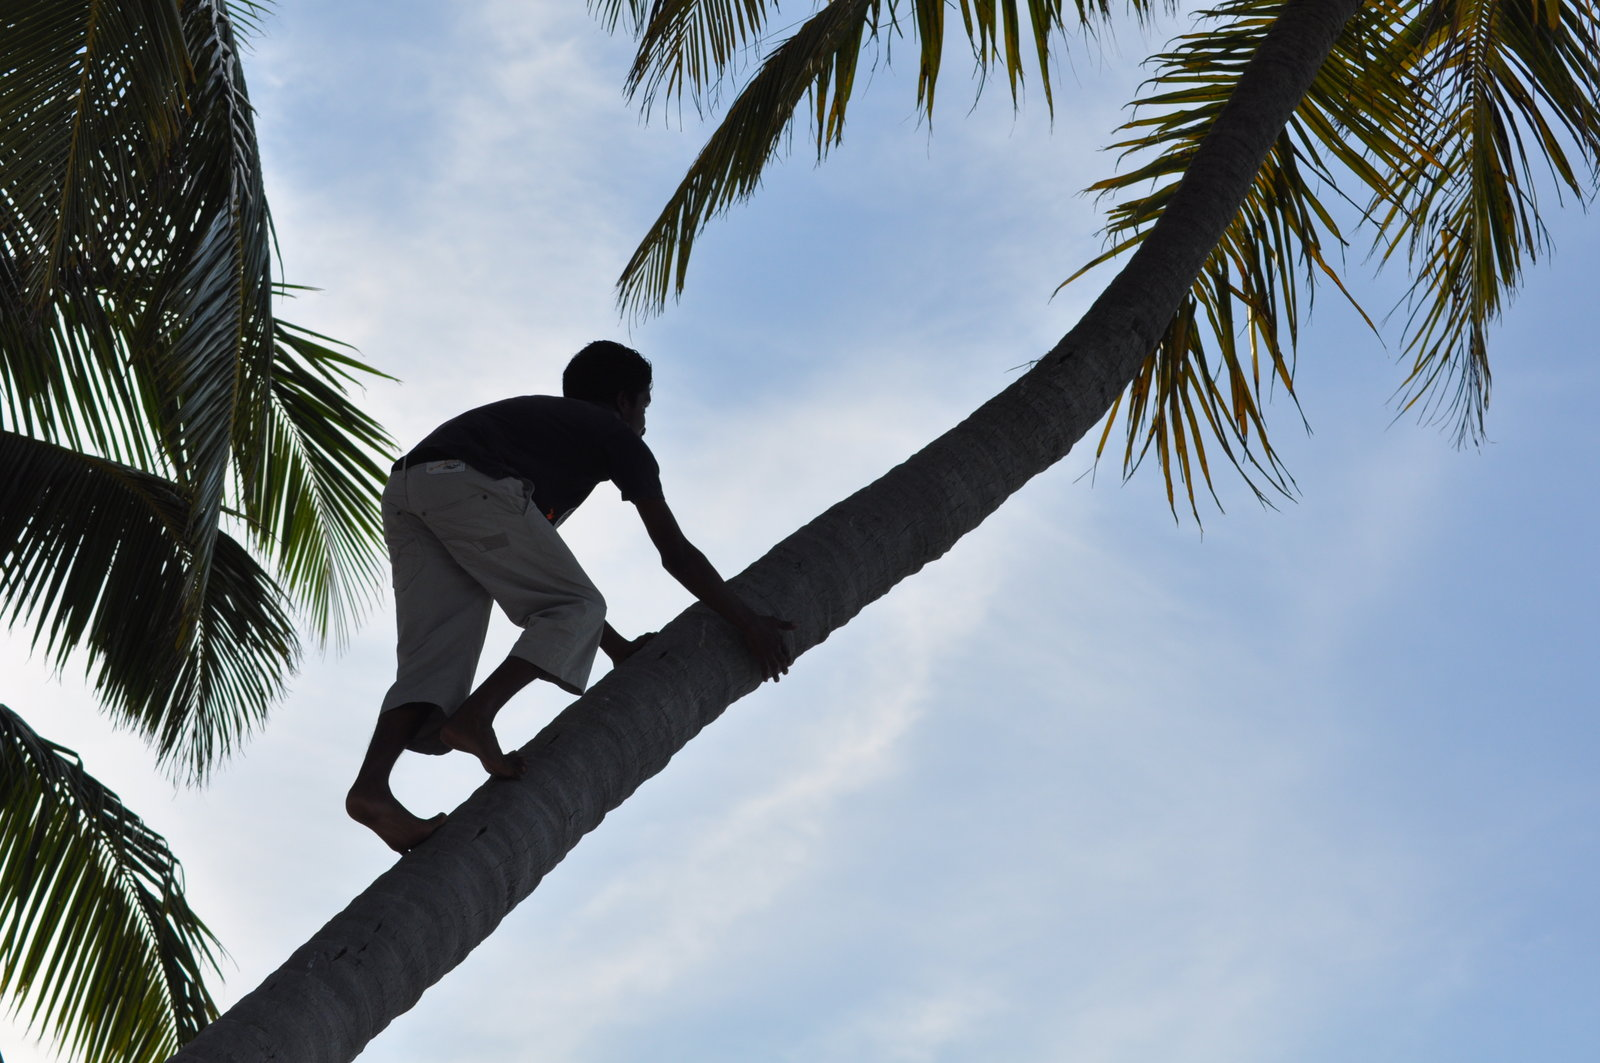 a man climbing upa a coconut tree